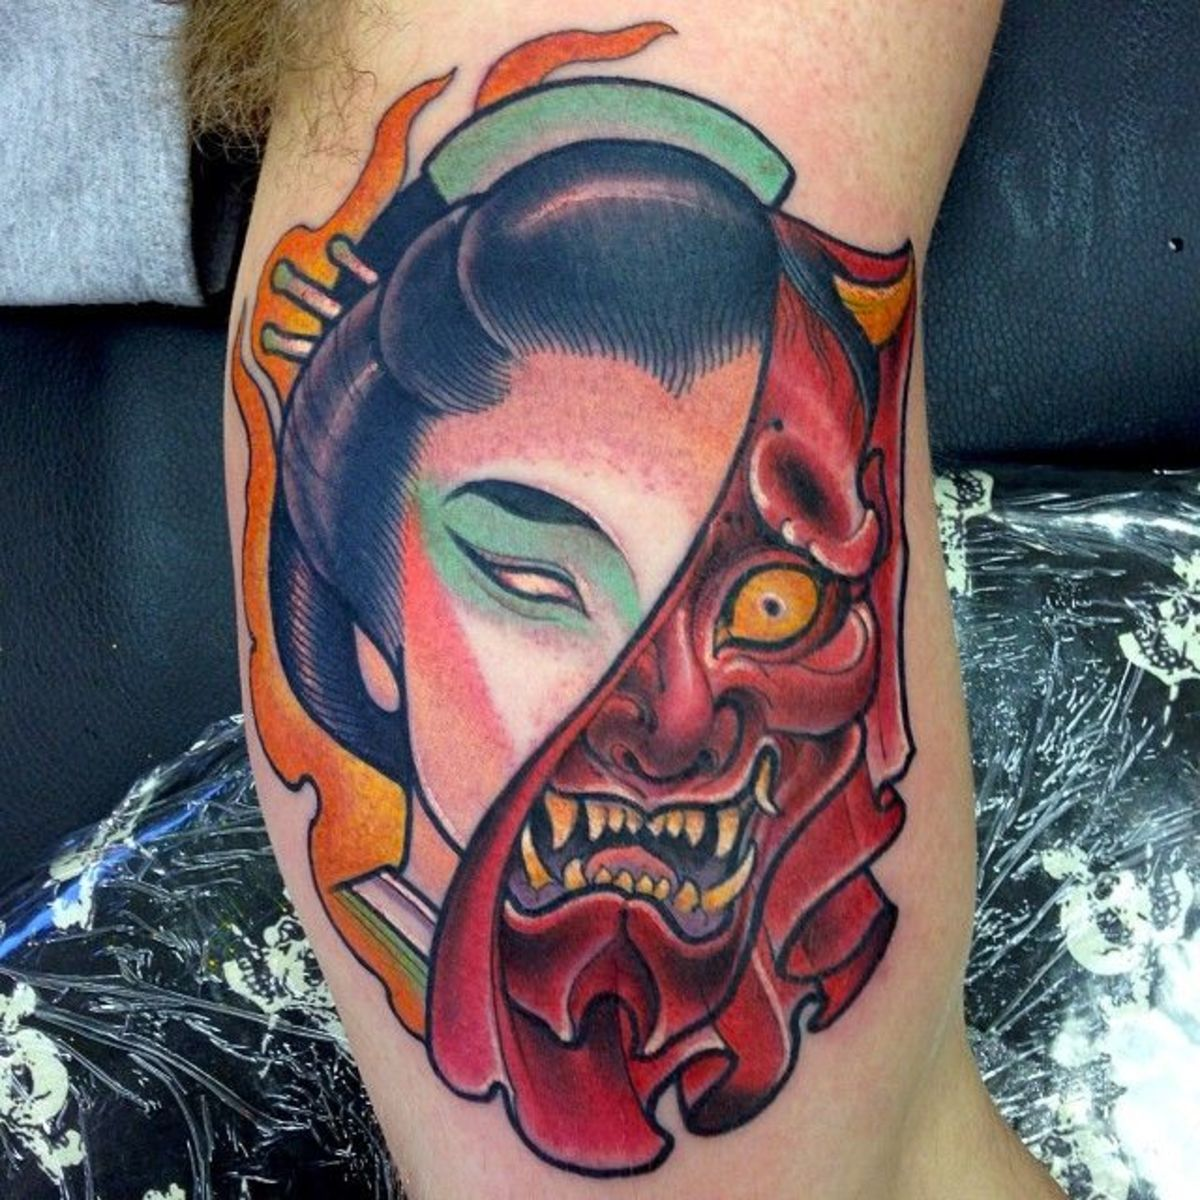 Another way tattoo artists are getting creative is by merging the skull or a woman's face to the Hannya mask.